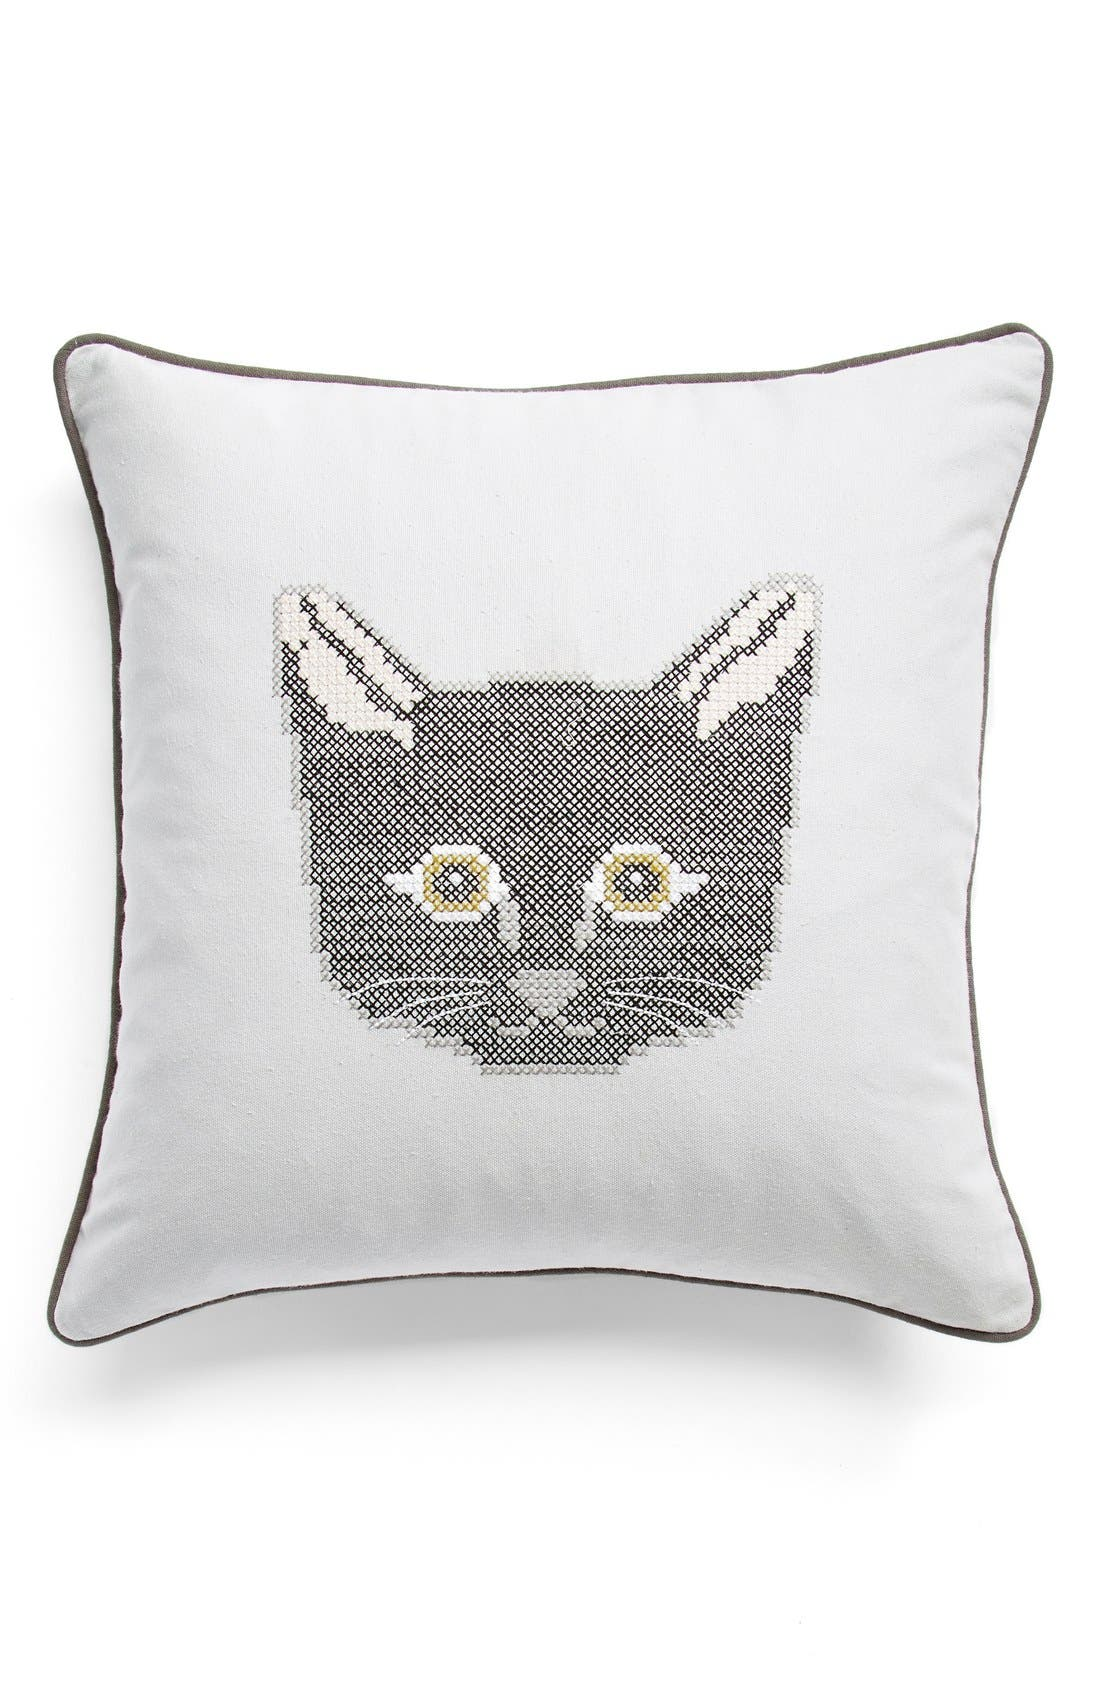 Main Image - Nordstrom at Home 'Alley' Accent Pillow